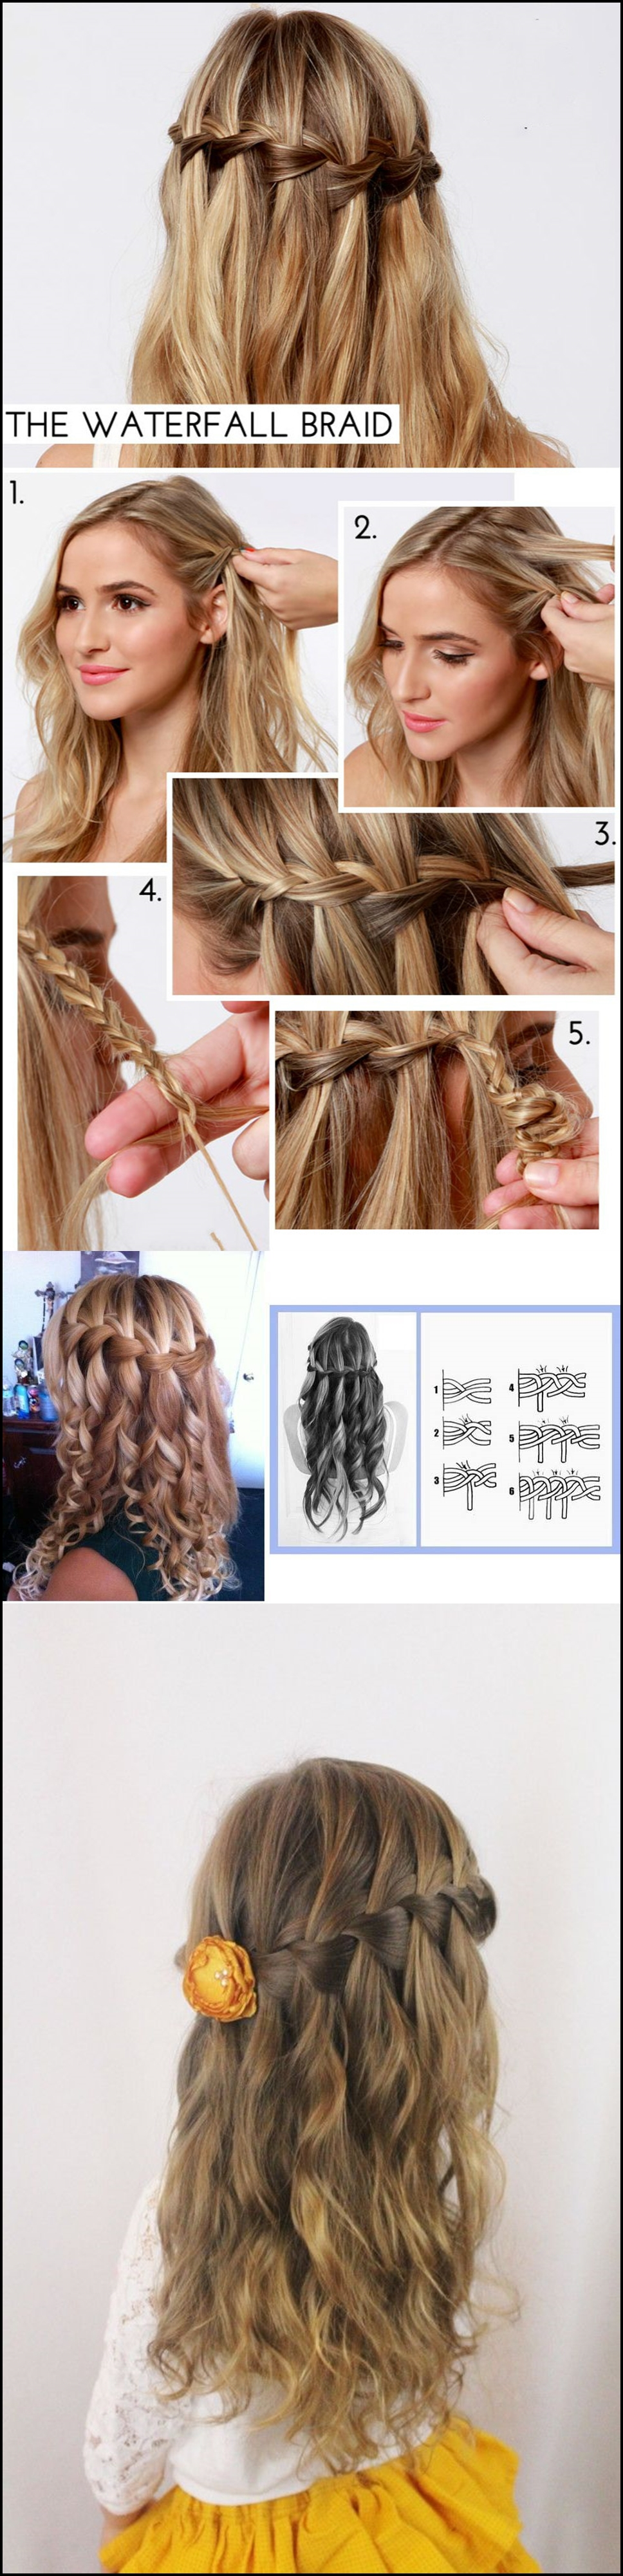 waterfal lbraid hairstyle m Wonderful DIY waterfall braid hairstyle